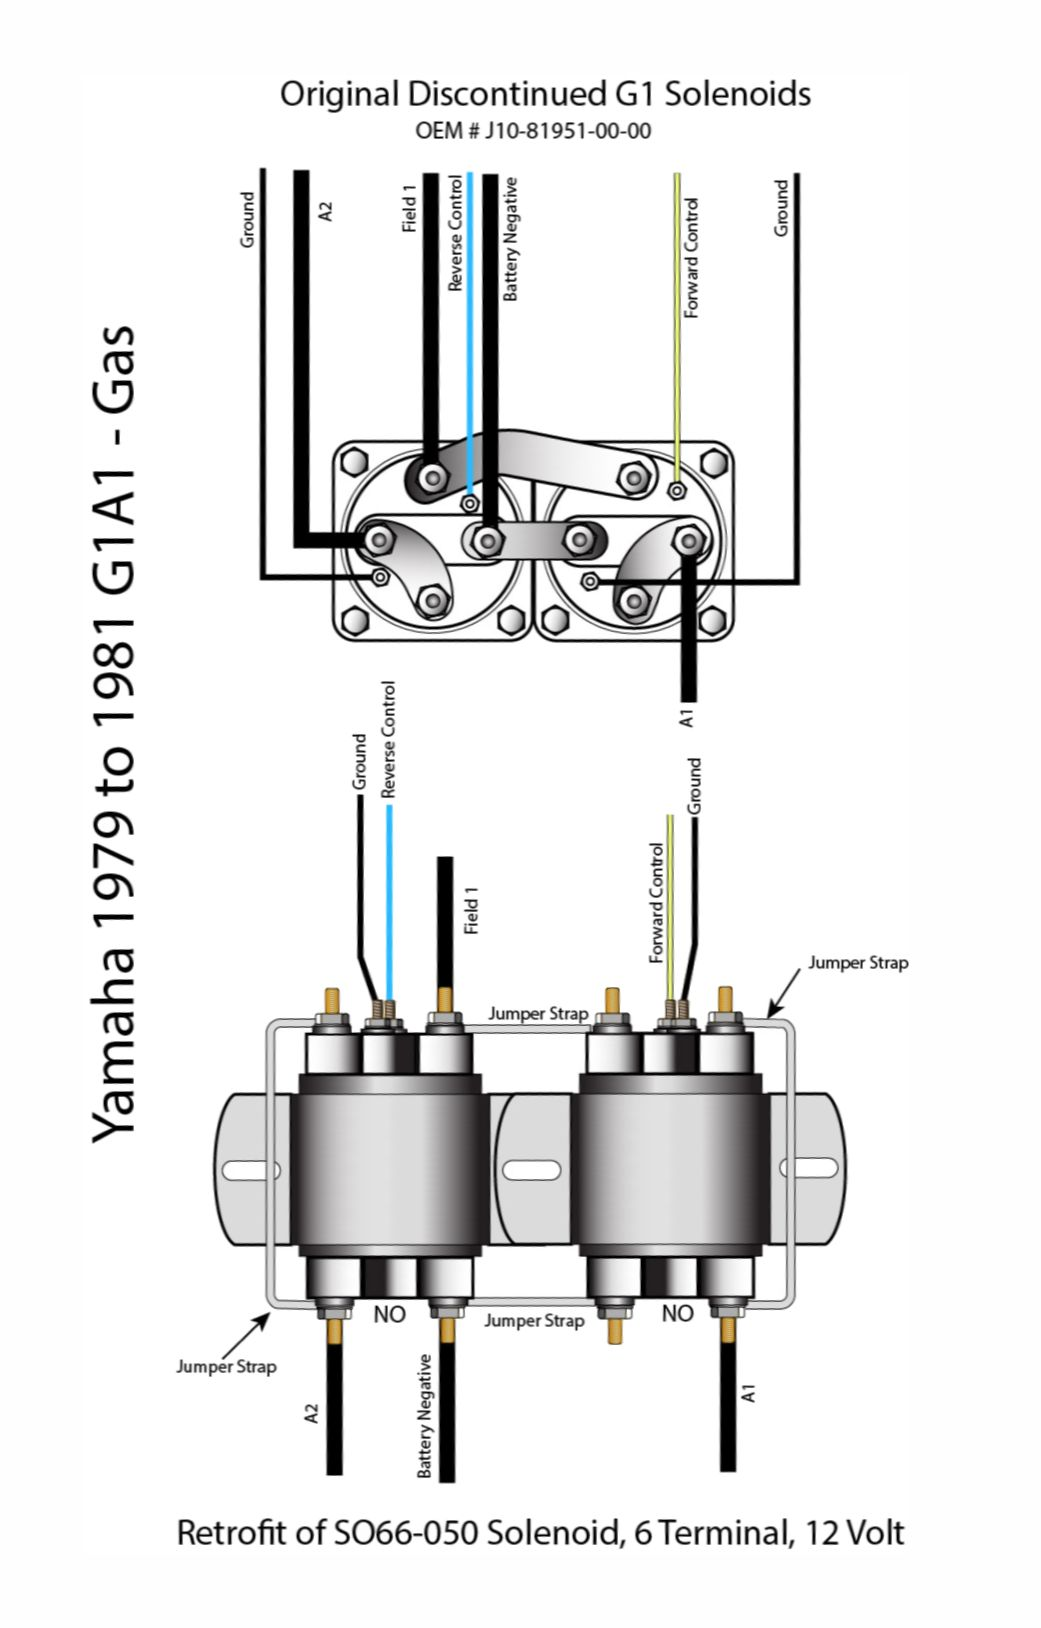 yamaha  wiring diagrams · wiring to retrofit 1979 to 1981 gas g1 solenoids